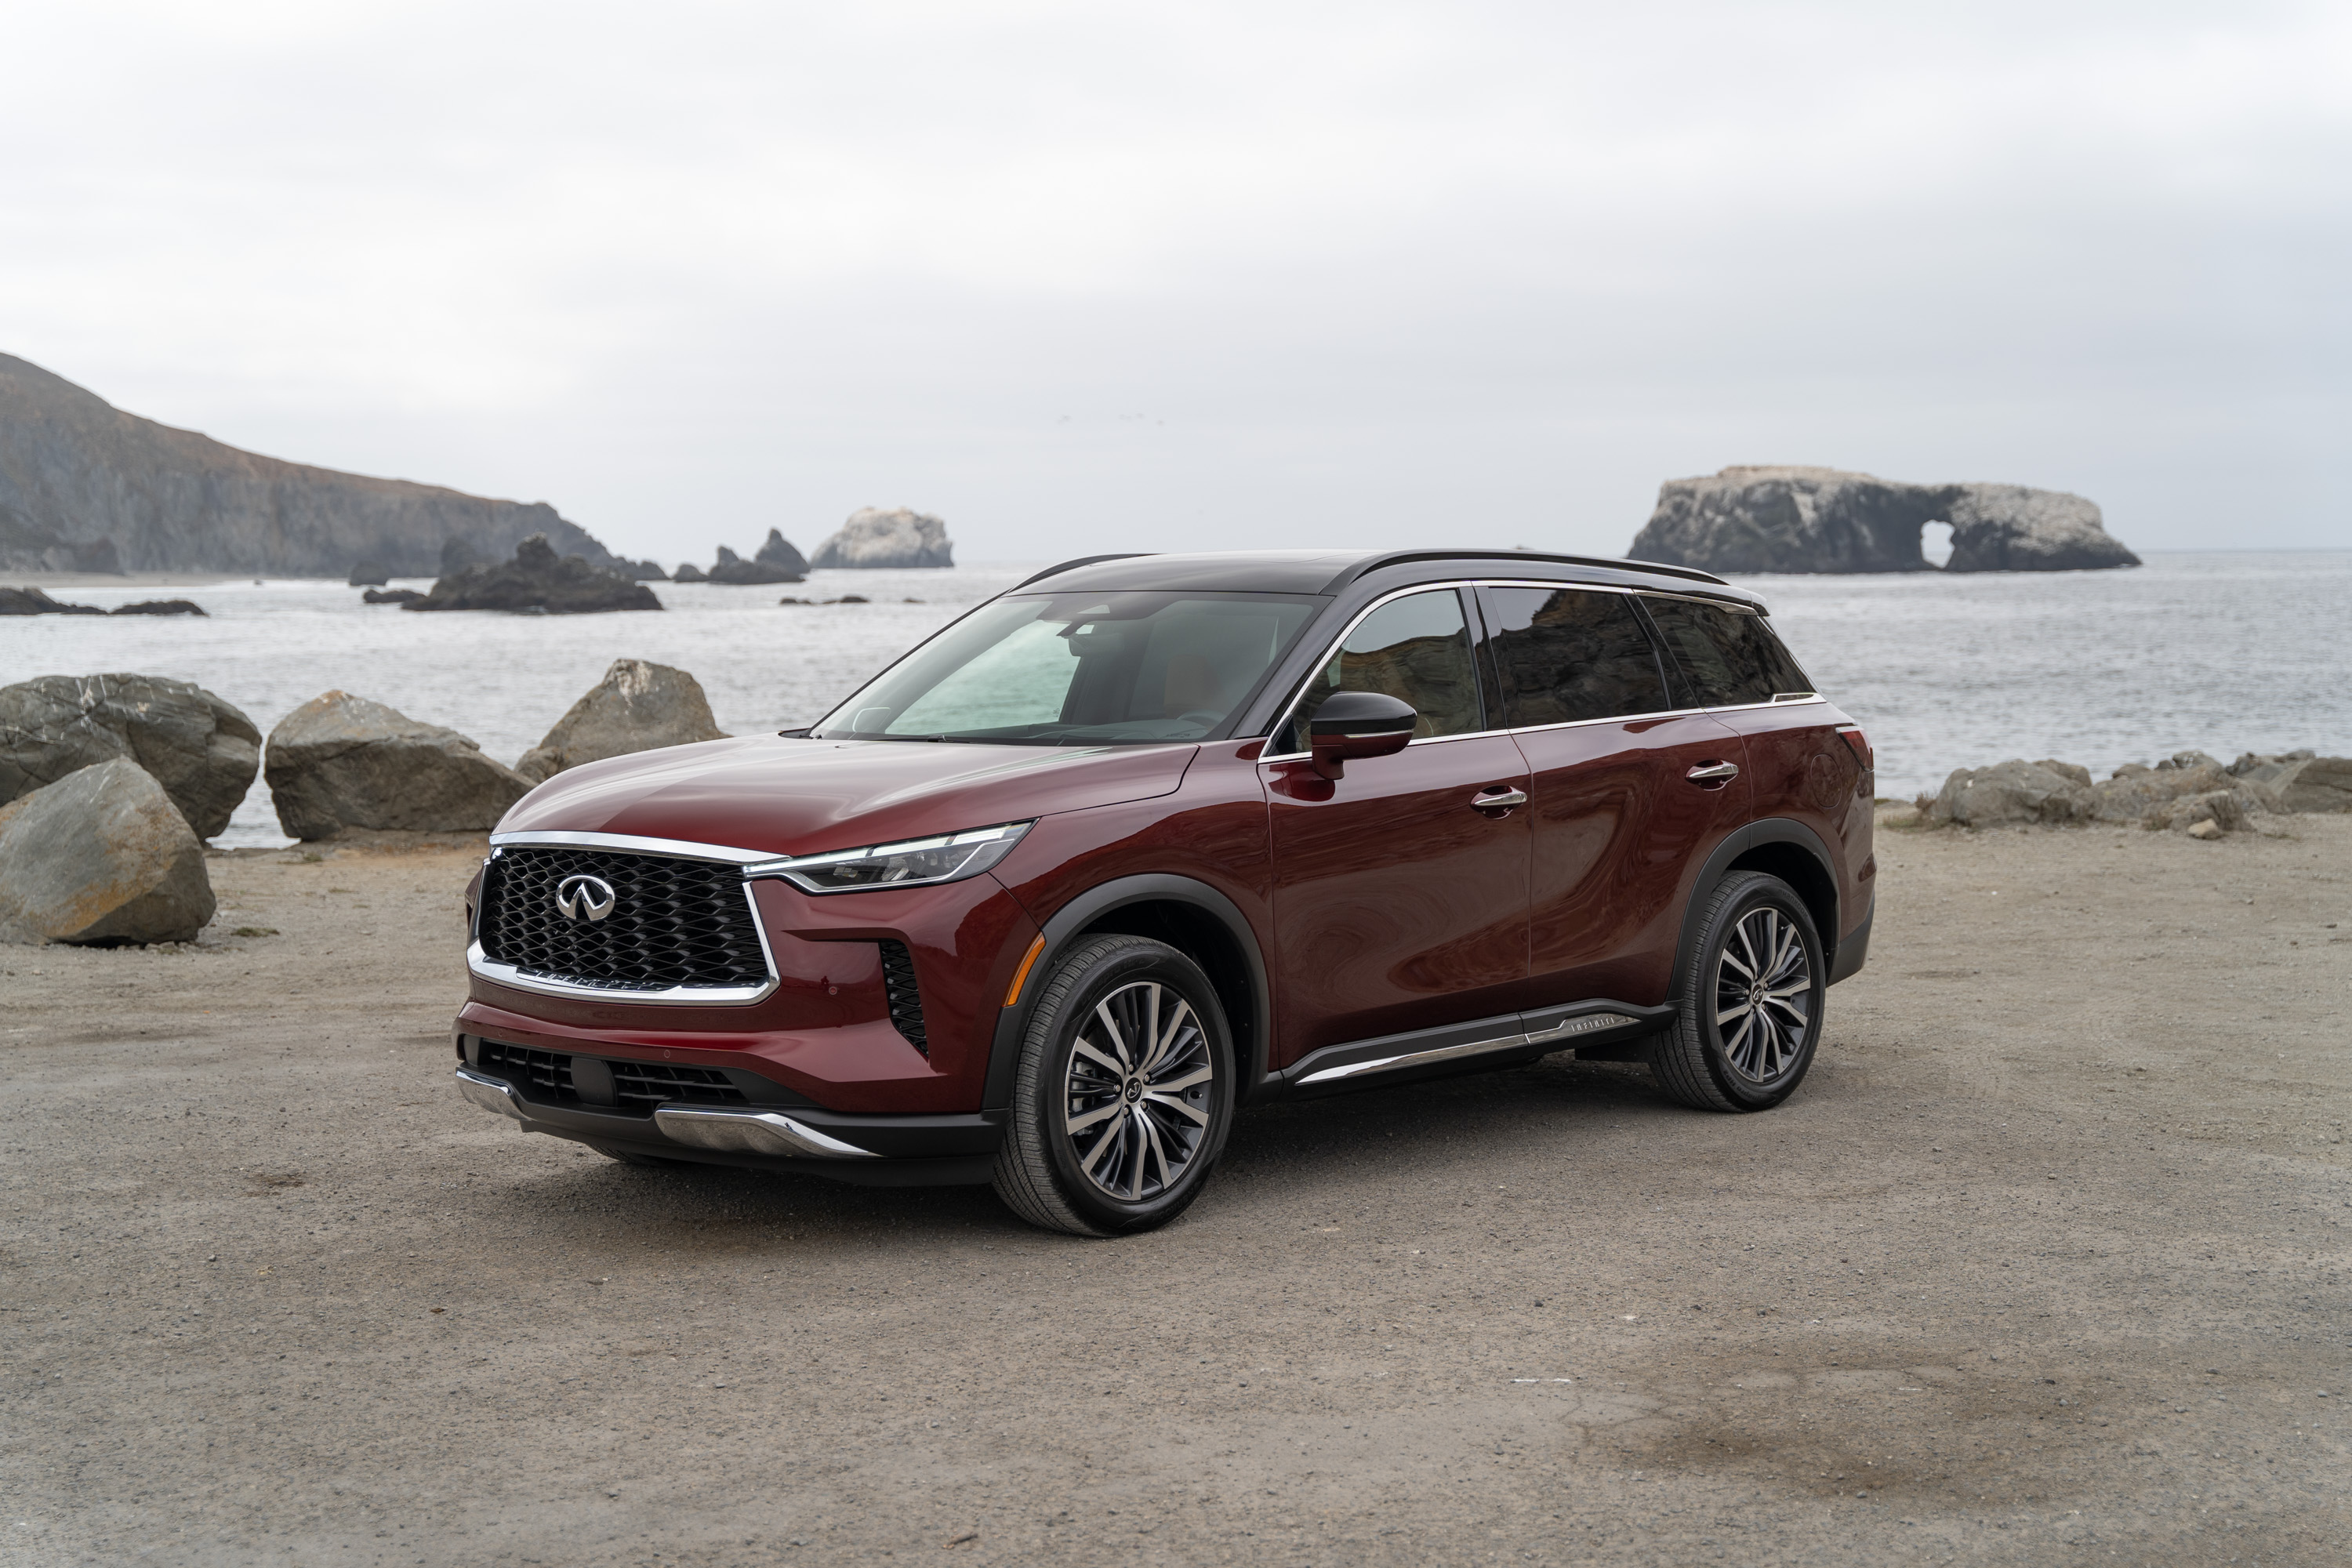 2022 Infiniti QX60 first drive review: A long overdue upgrade     - Roadshow